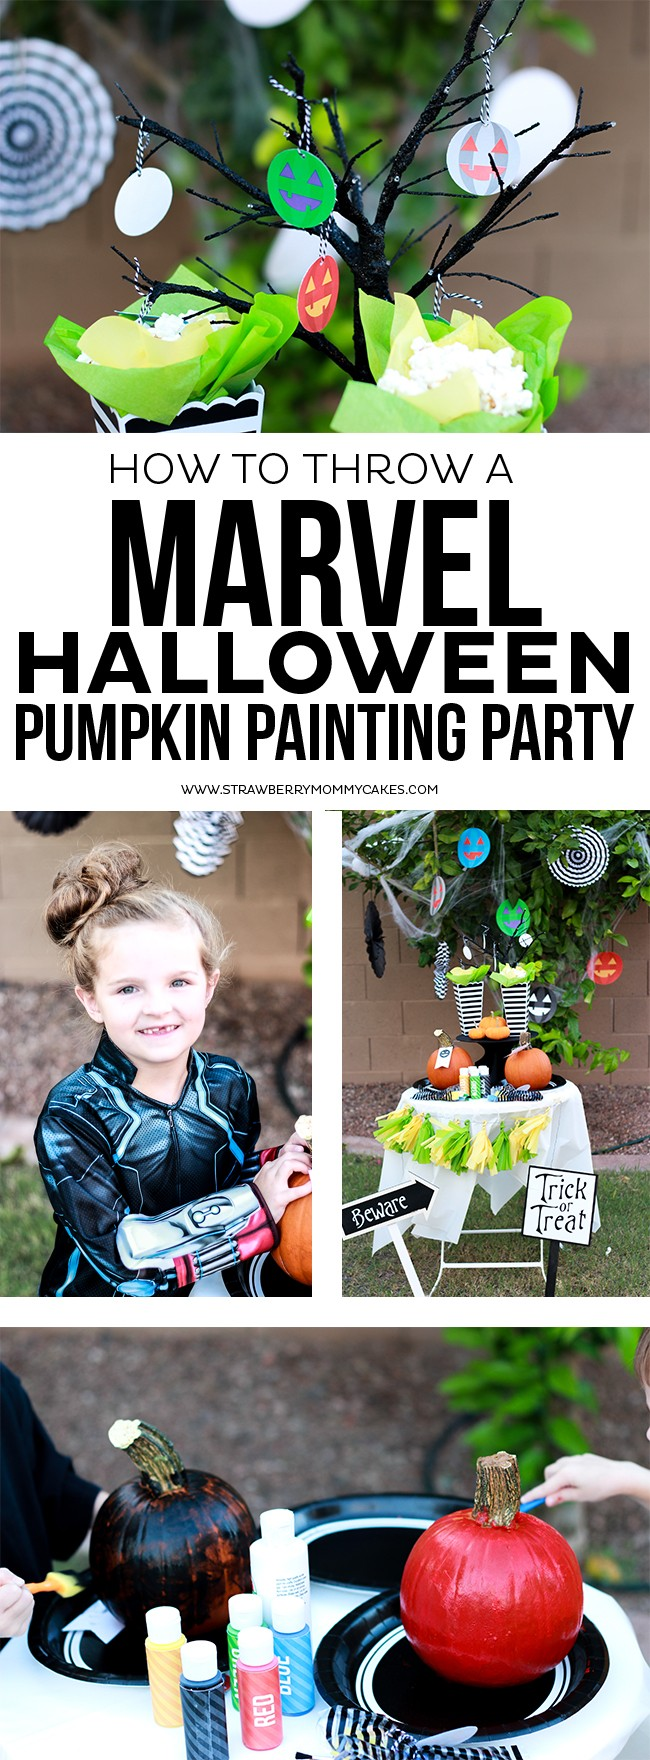 Learn How to throw a MARVEL Halloween Pumpkin Painting Party for a fun and creative activity with your kids!